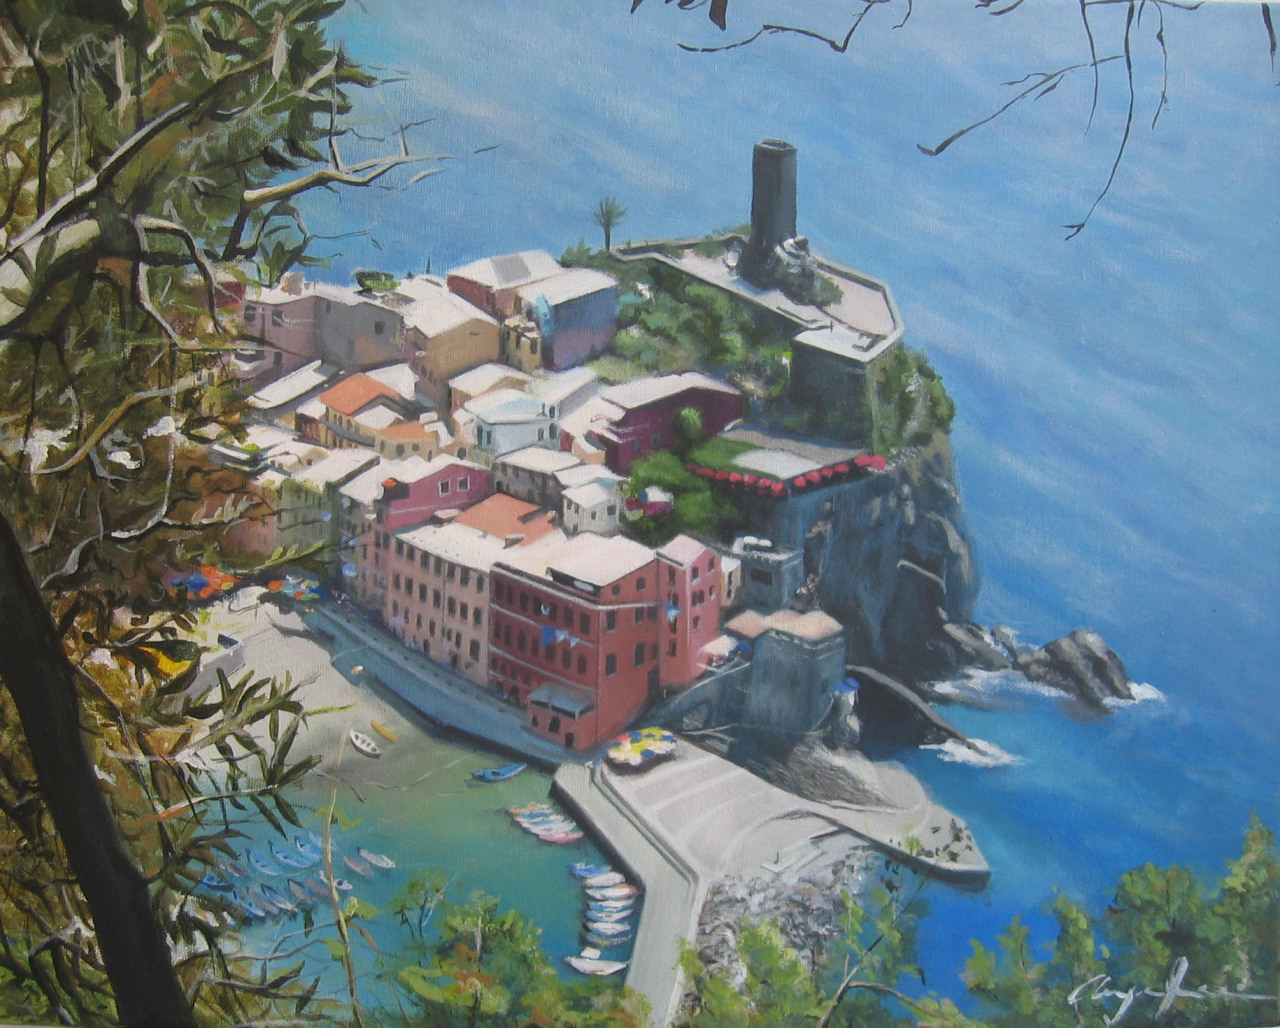 Cinque Terre, Italy  /  Acrylic on Canvas  /  18 x 20 in  /  Commission